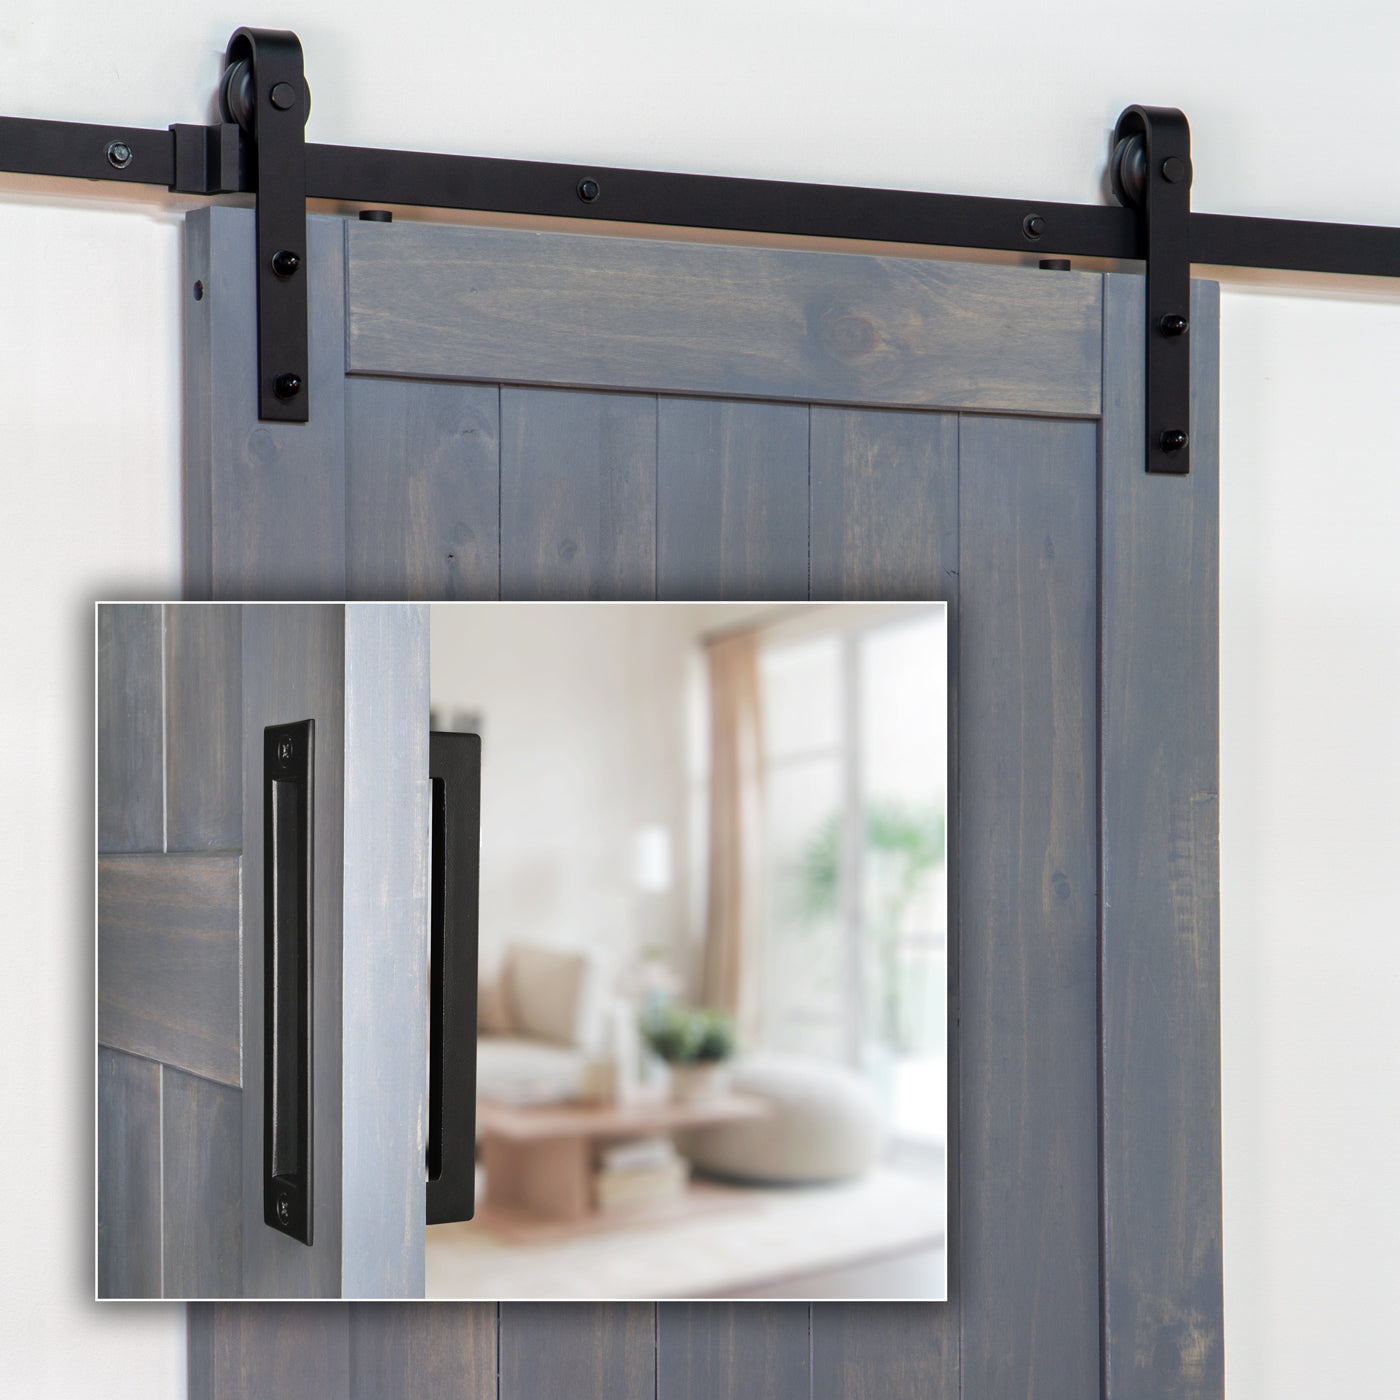 Barn Door Hardware Track Kit (Includes Black Iron Grip and Flush Pull)